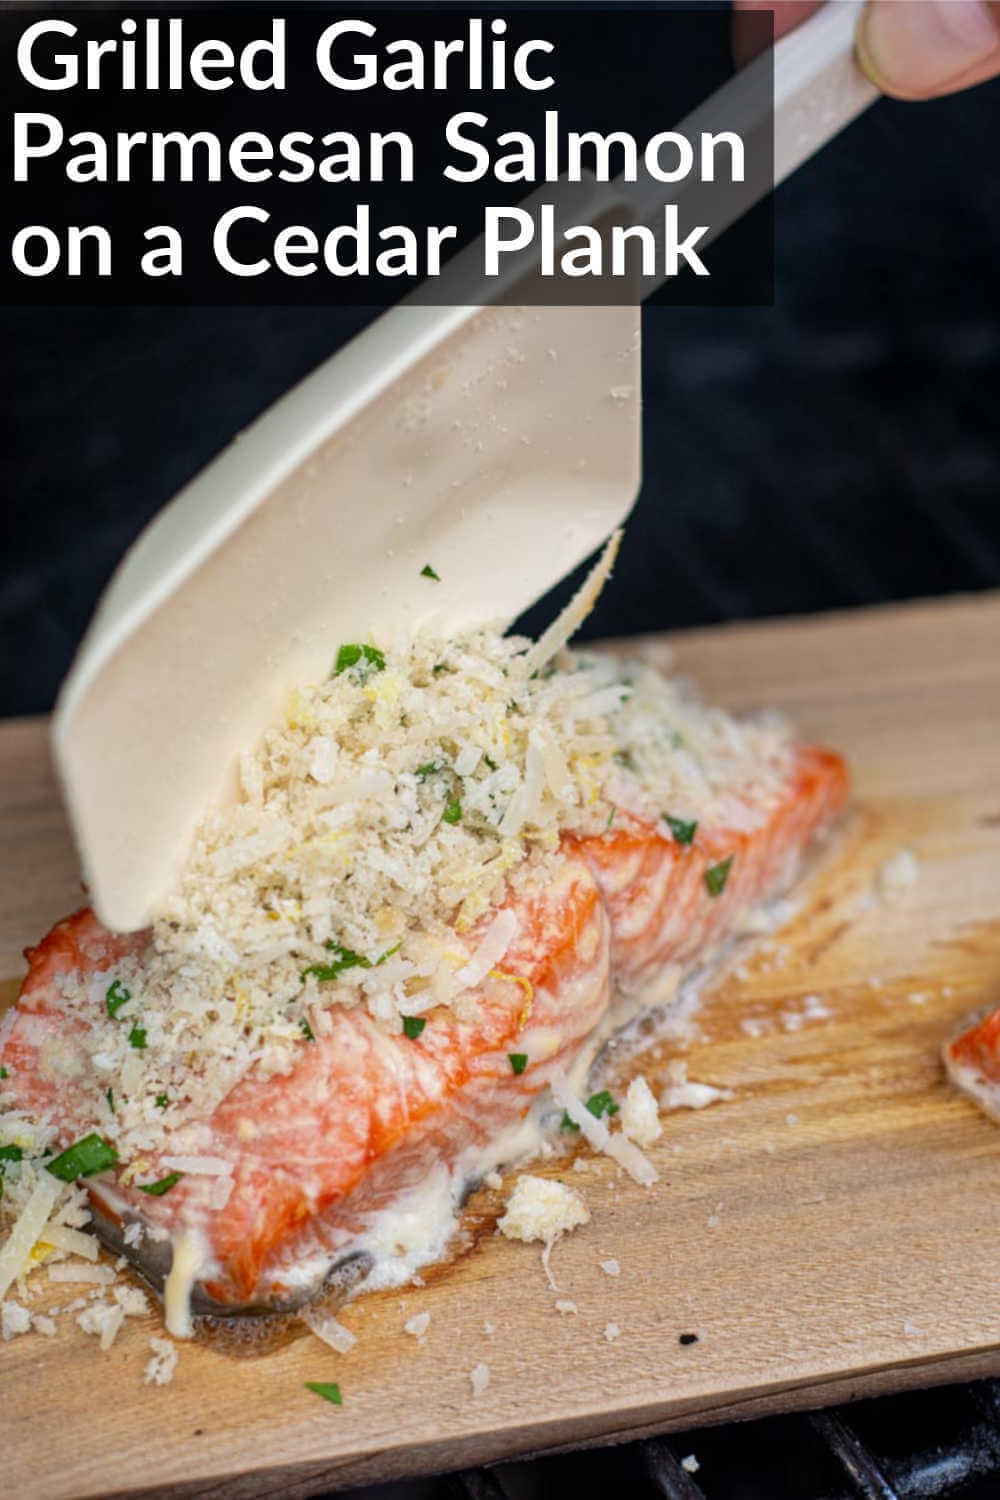 Grilled Garlic Parmesan Crusted Salmon on a Cedar Plank is an extremely easy recipe that tastes like you are at a high end restaurant. Fast and Delicious are a recipe for Success at your next BBQ #BigGreenEgg #Salmon #BGE #Grilled #GrilledSalmon #CedarPlank